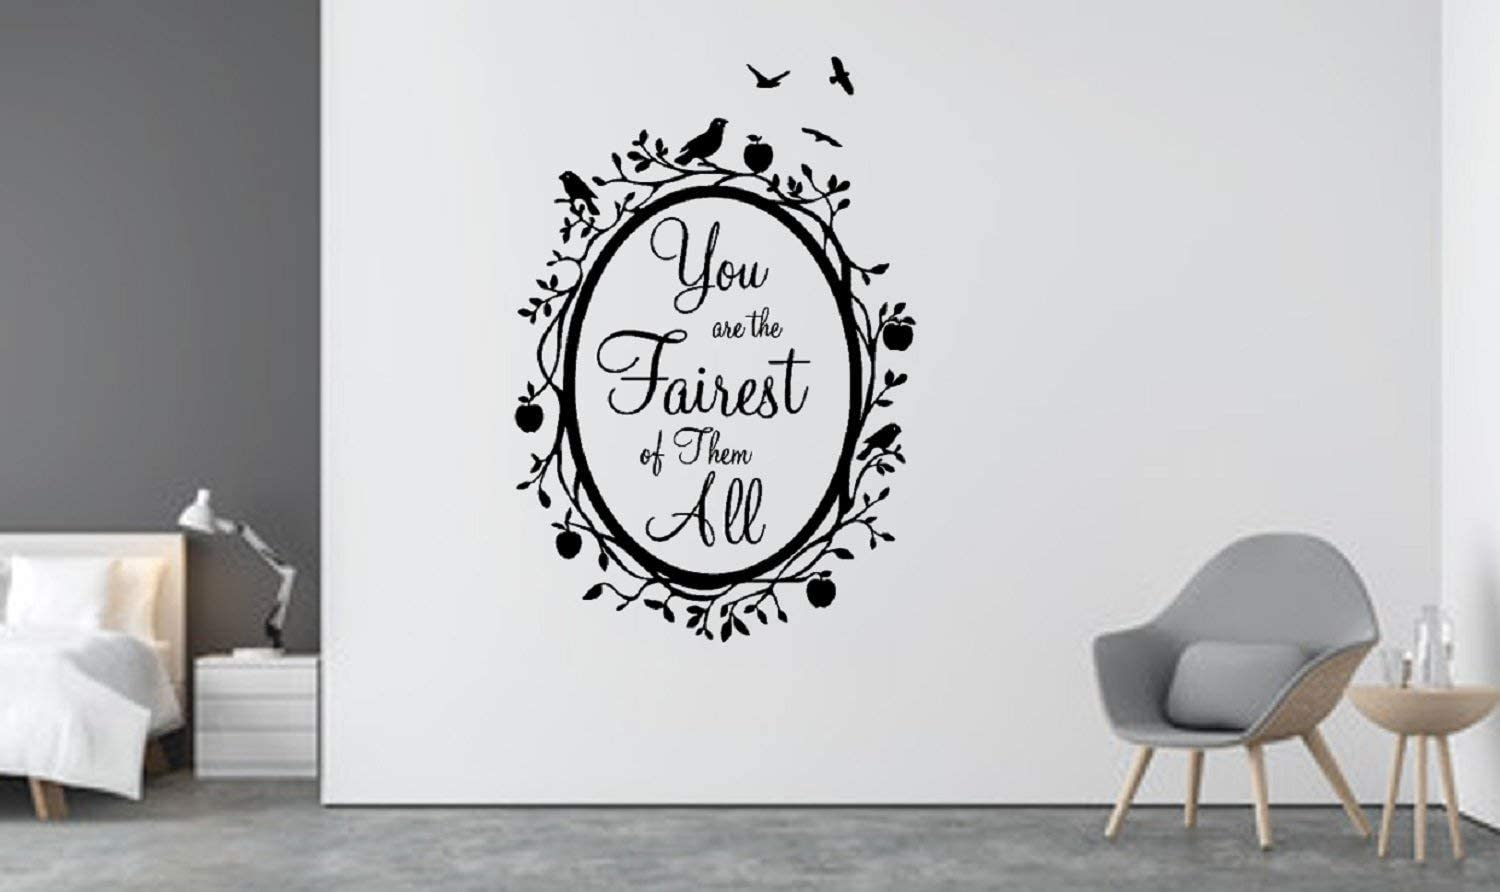 Artstickerscool Disney Wall Decal - Disney Villain Decal - Evil Queen Wall Decal - Disney Decor - Disney Villain - You are The Fairest of Them All Mirror